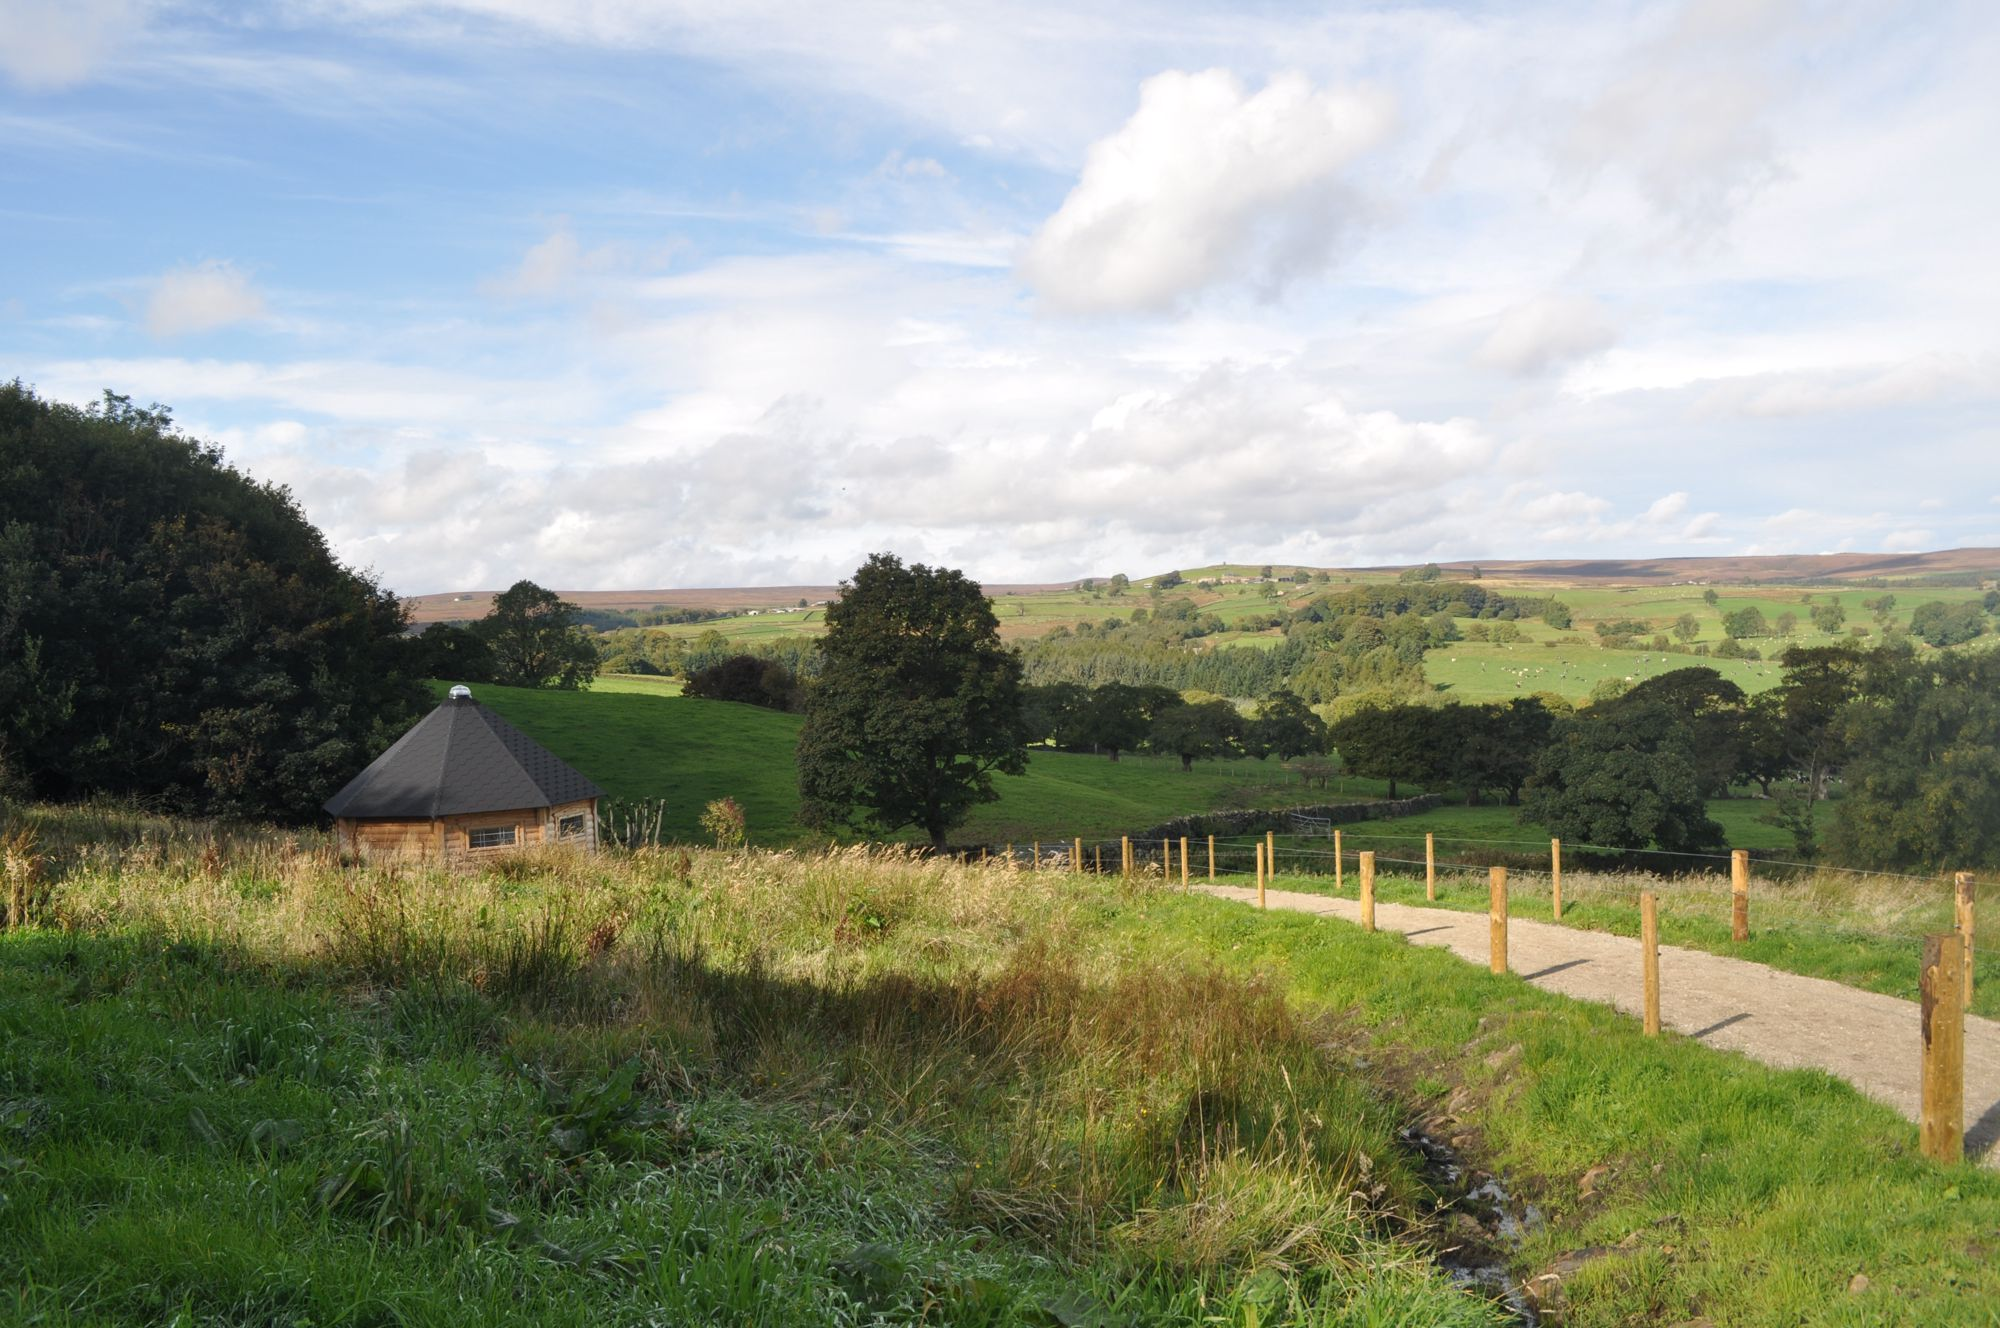 Glamping in the Yorkshire Dales – Best glampsites in the national park